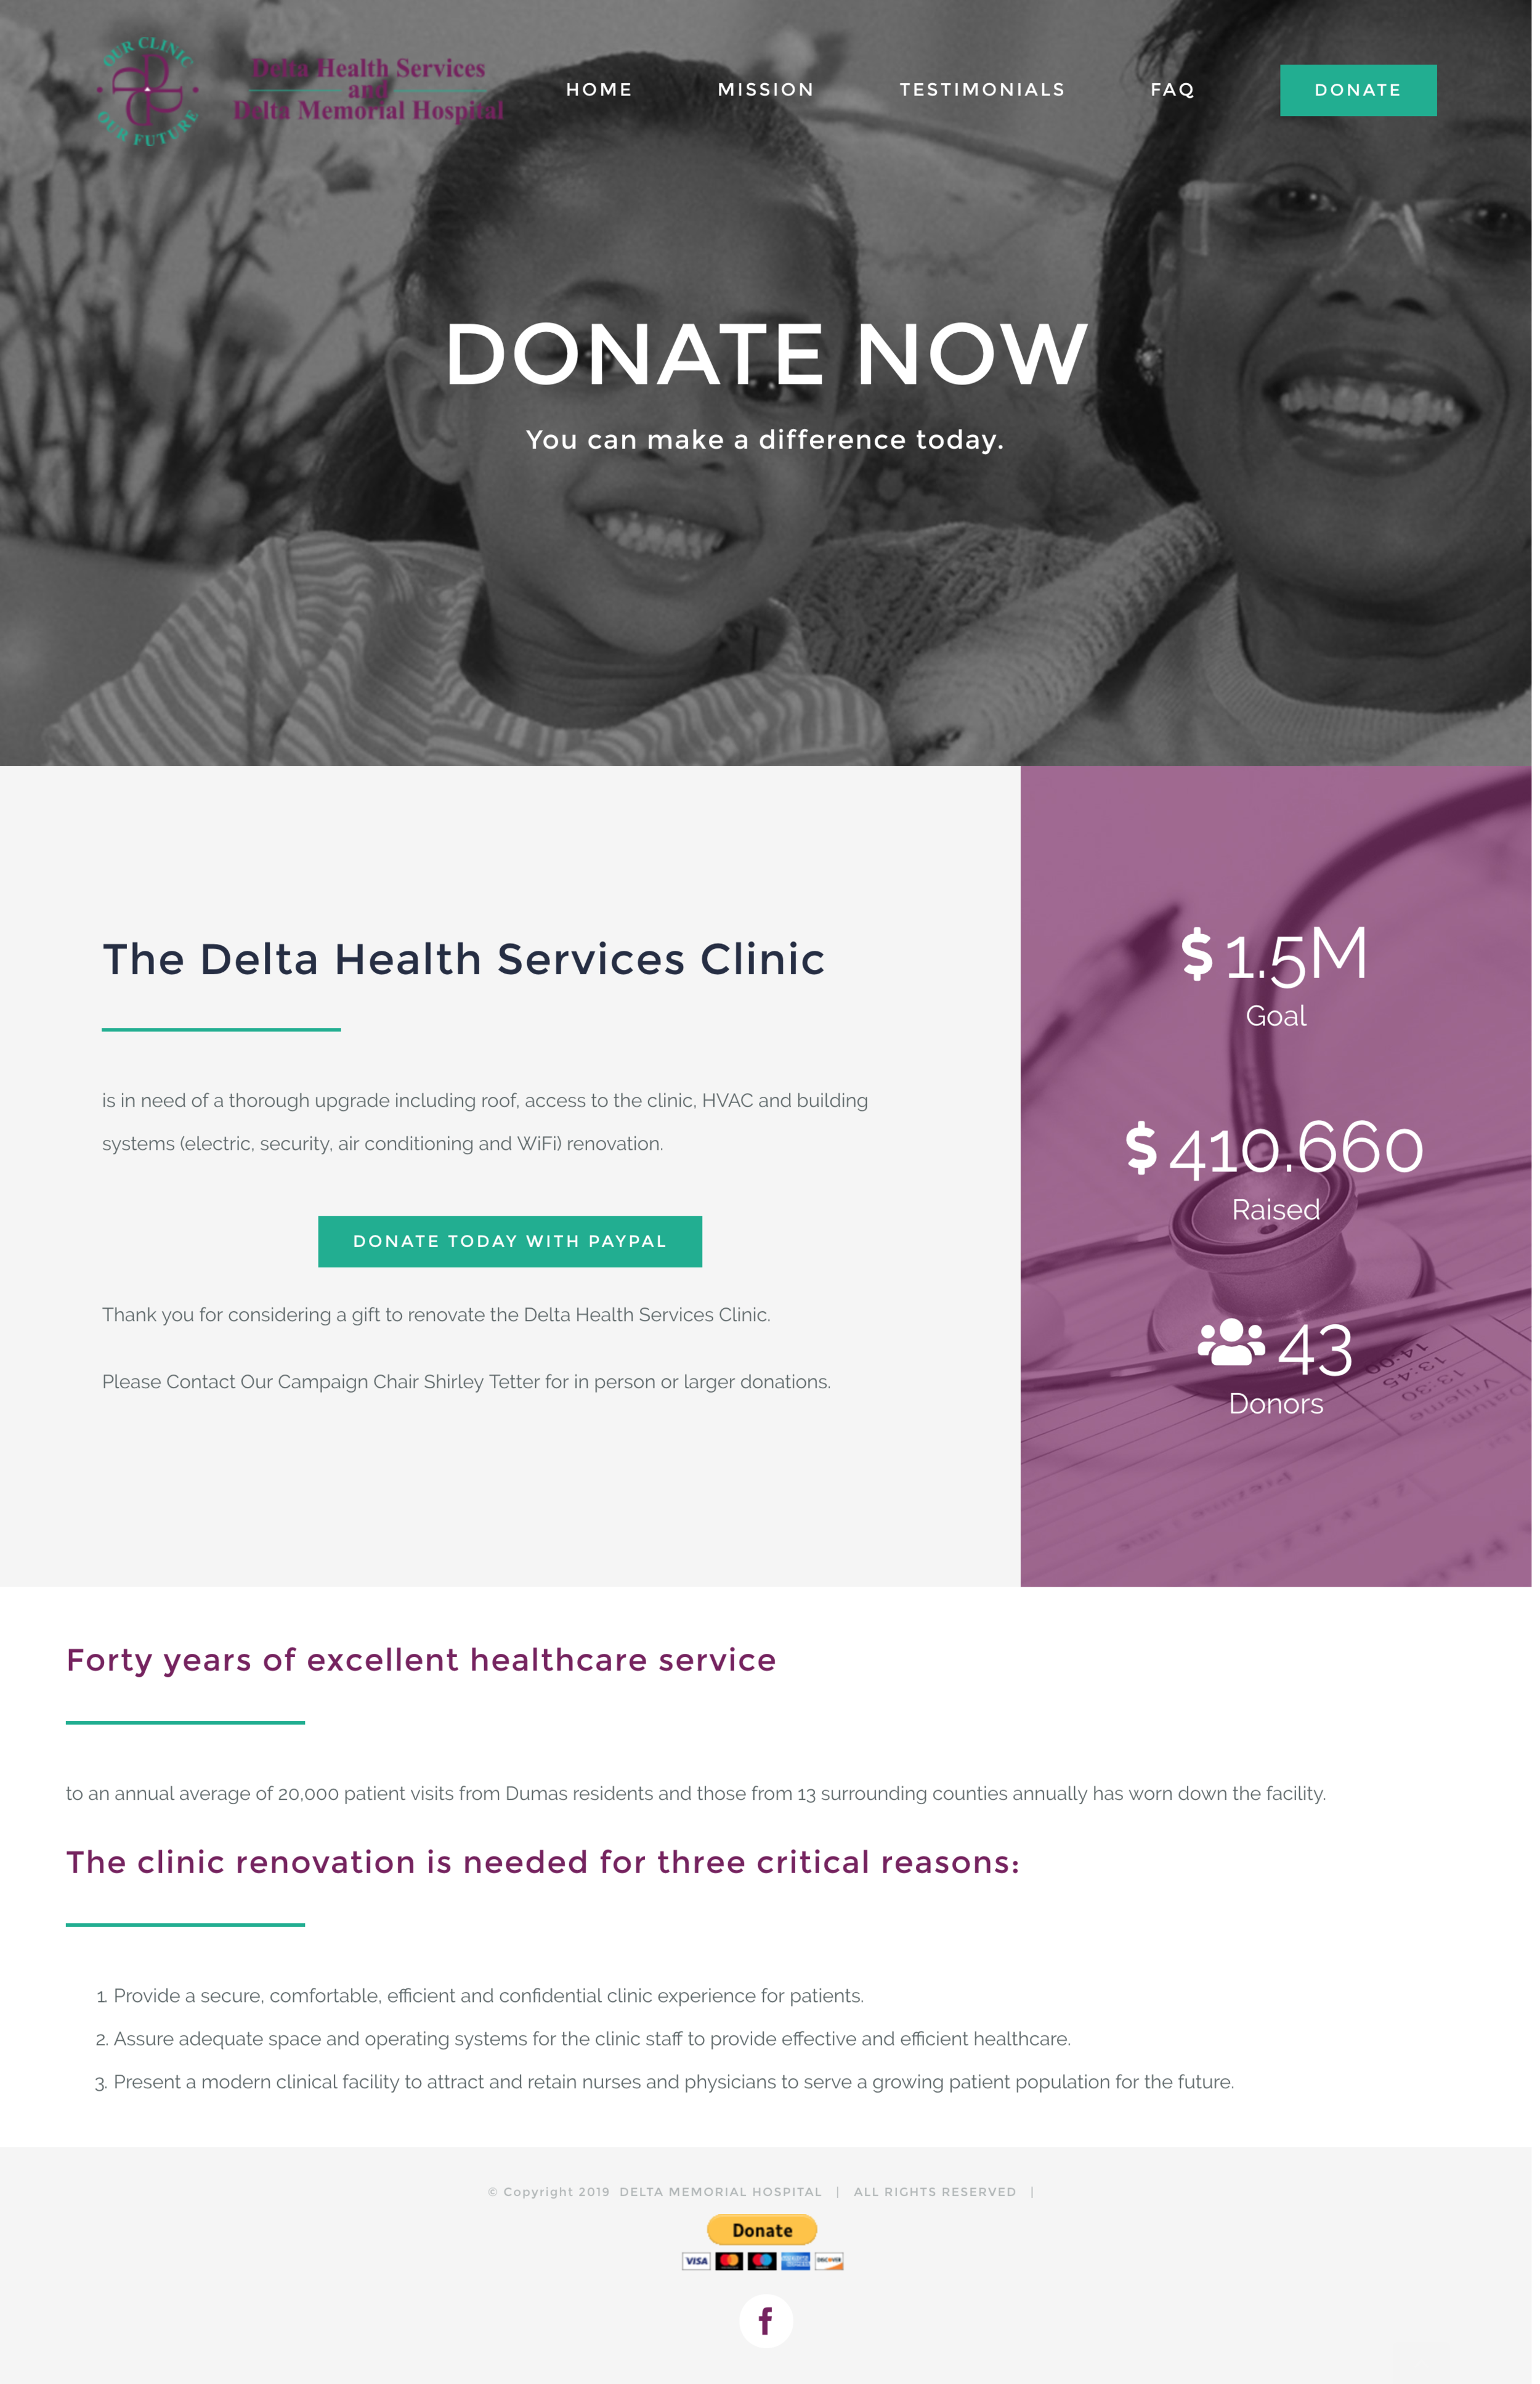 DeltaHealthServicesDonate.png